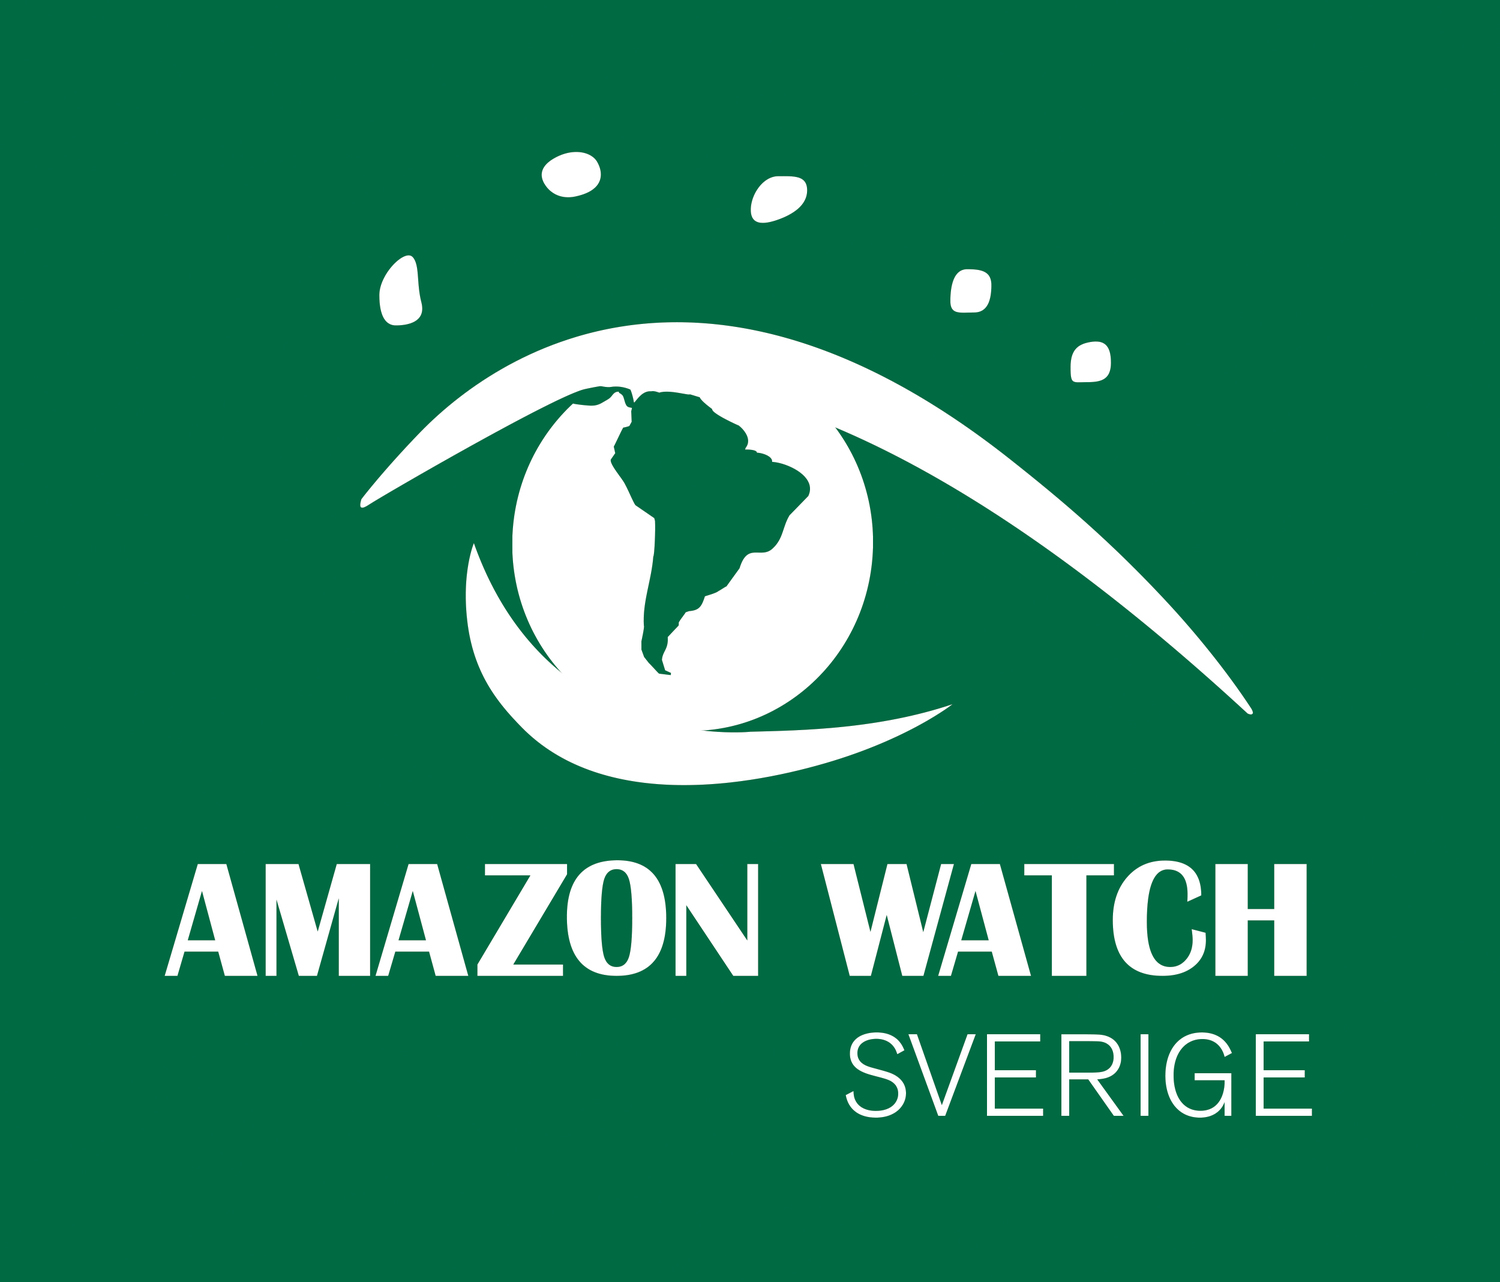 Amazon Watch Sverige